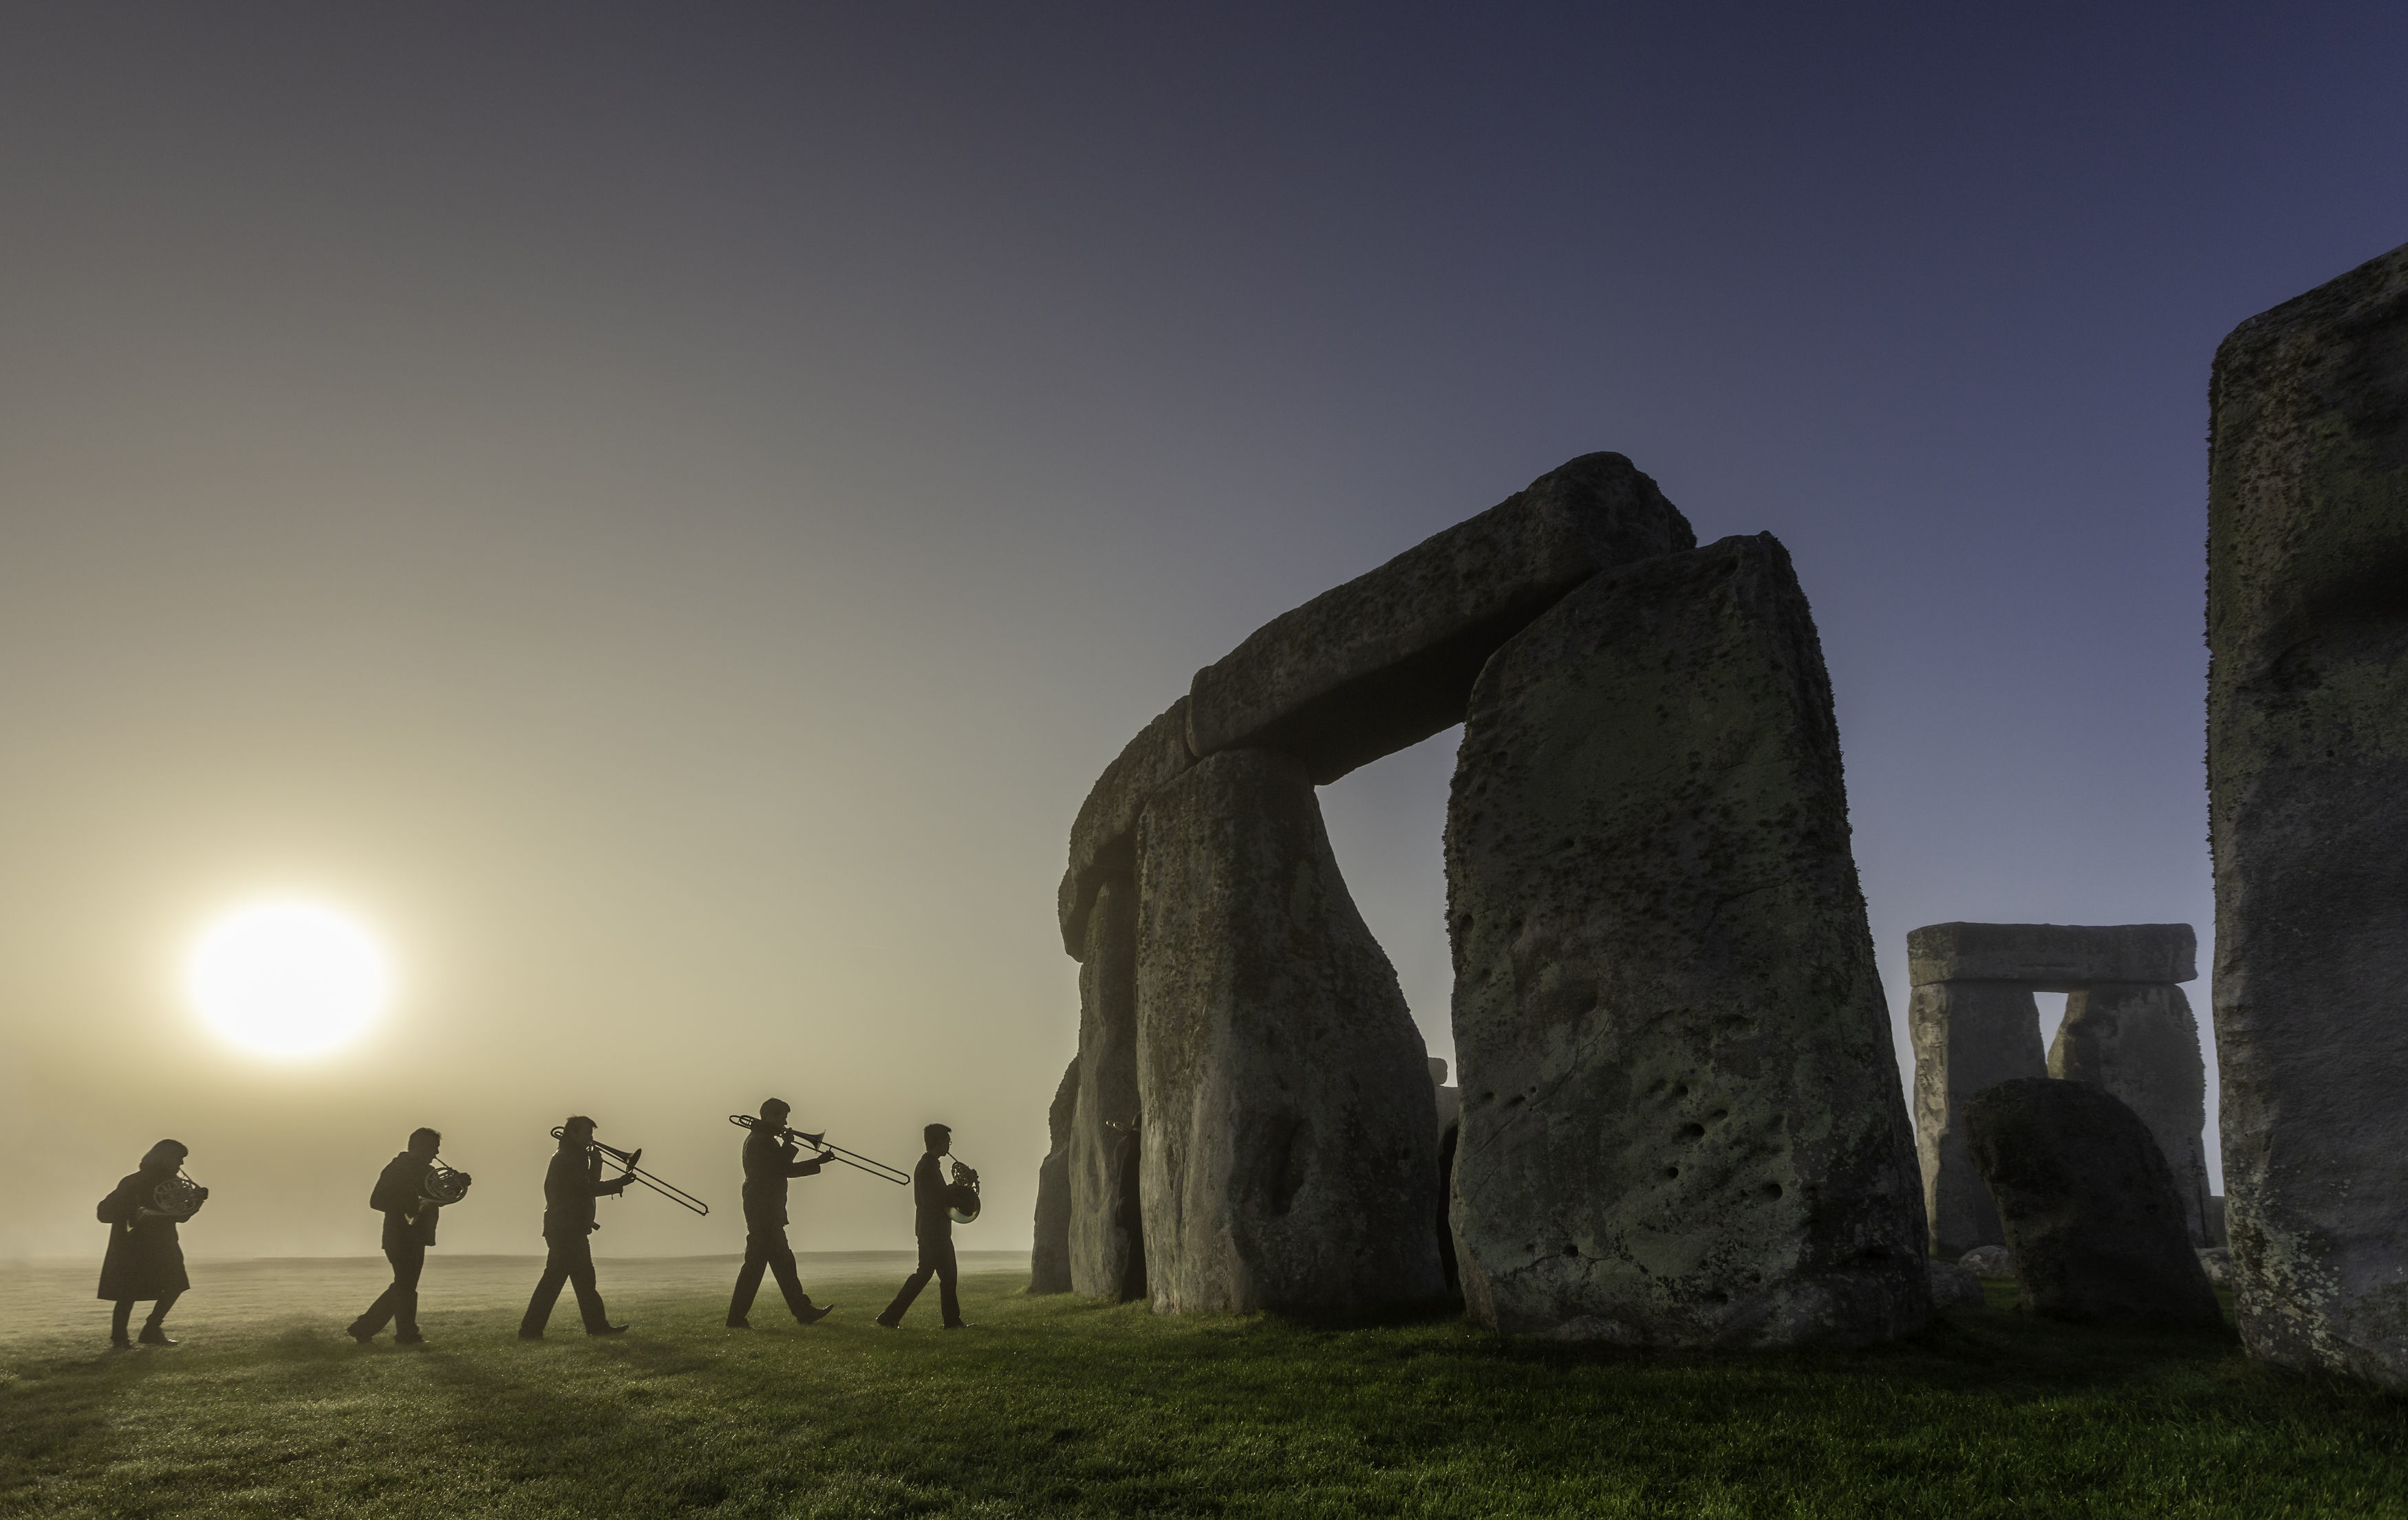 Musicians rehearsing at Stonehenge in Wiltshire ahead of English Heritage's celebrations marking 100 years since Stonehenge was donated to the nation